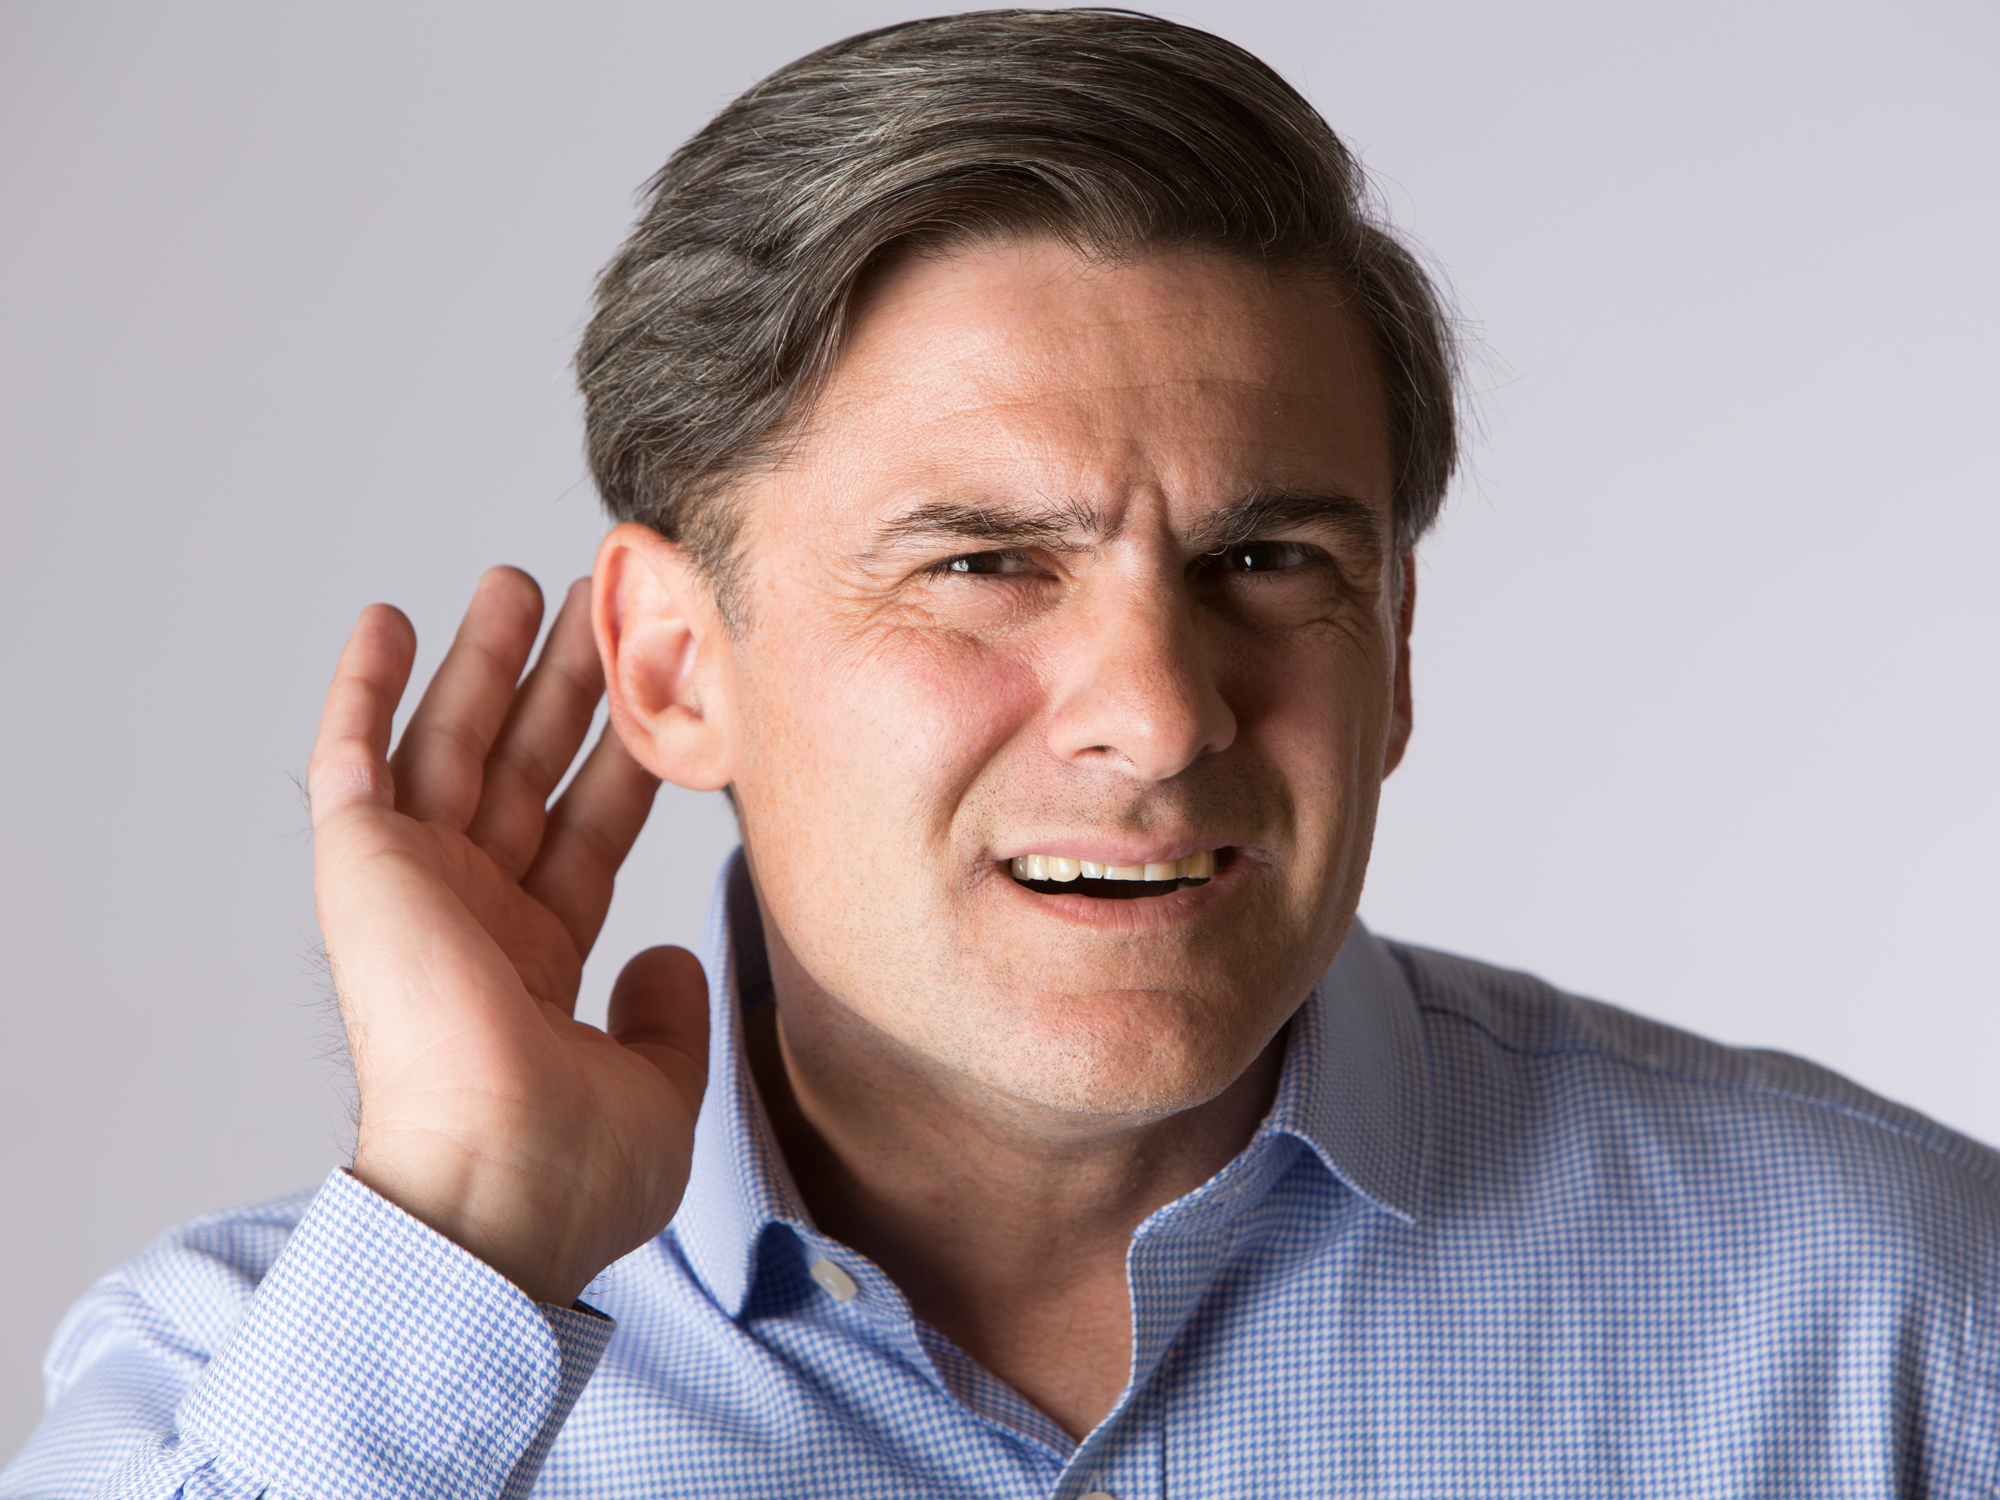 Why protecting your hearing could prevent dementia